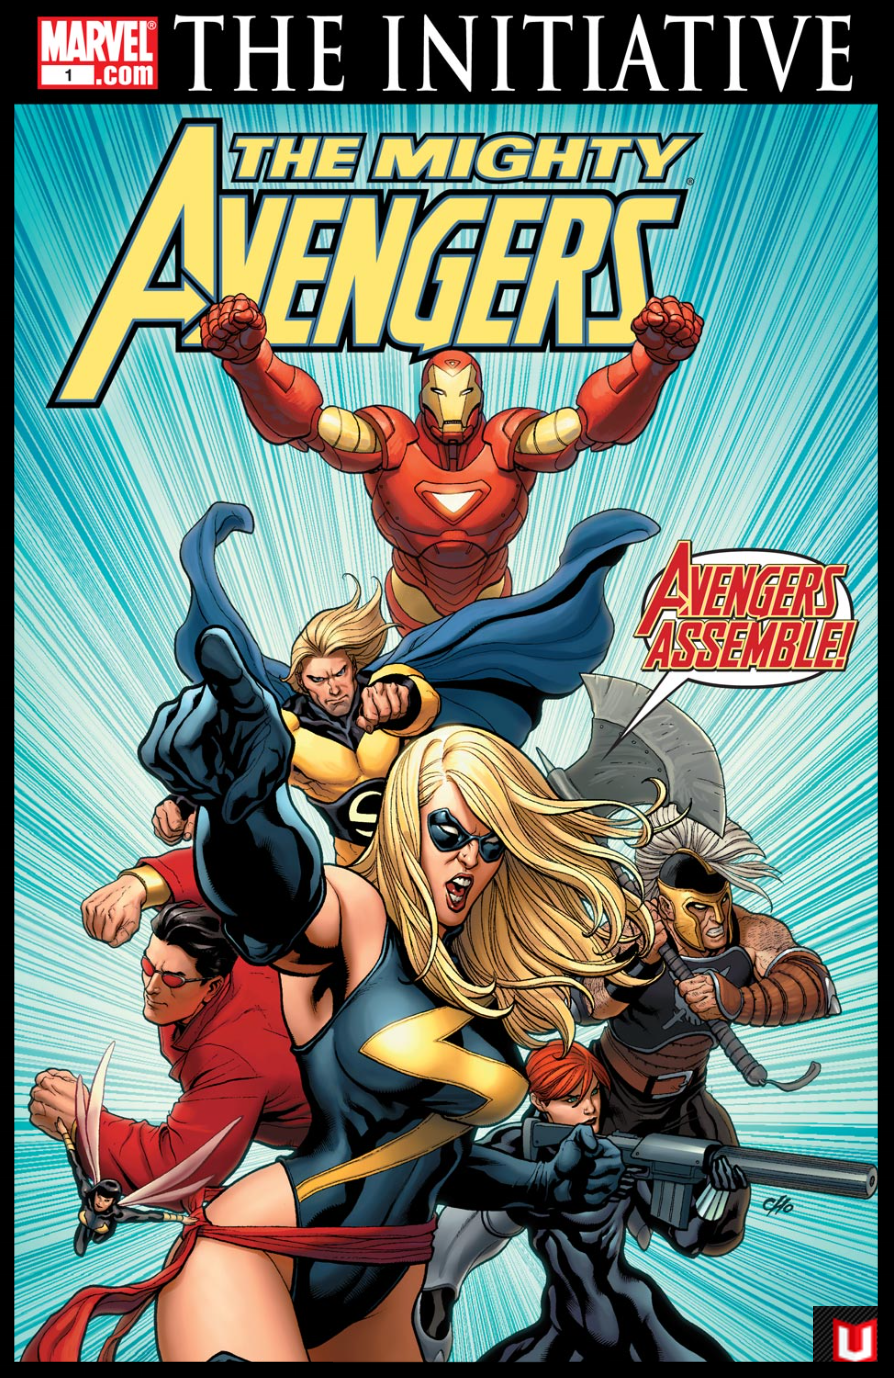 The Mighty Avengers #1 Cover